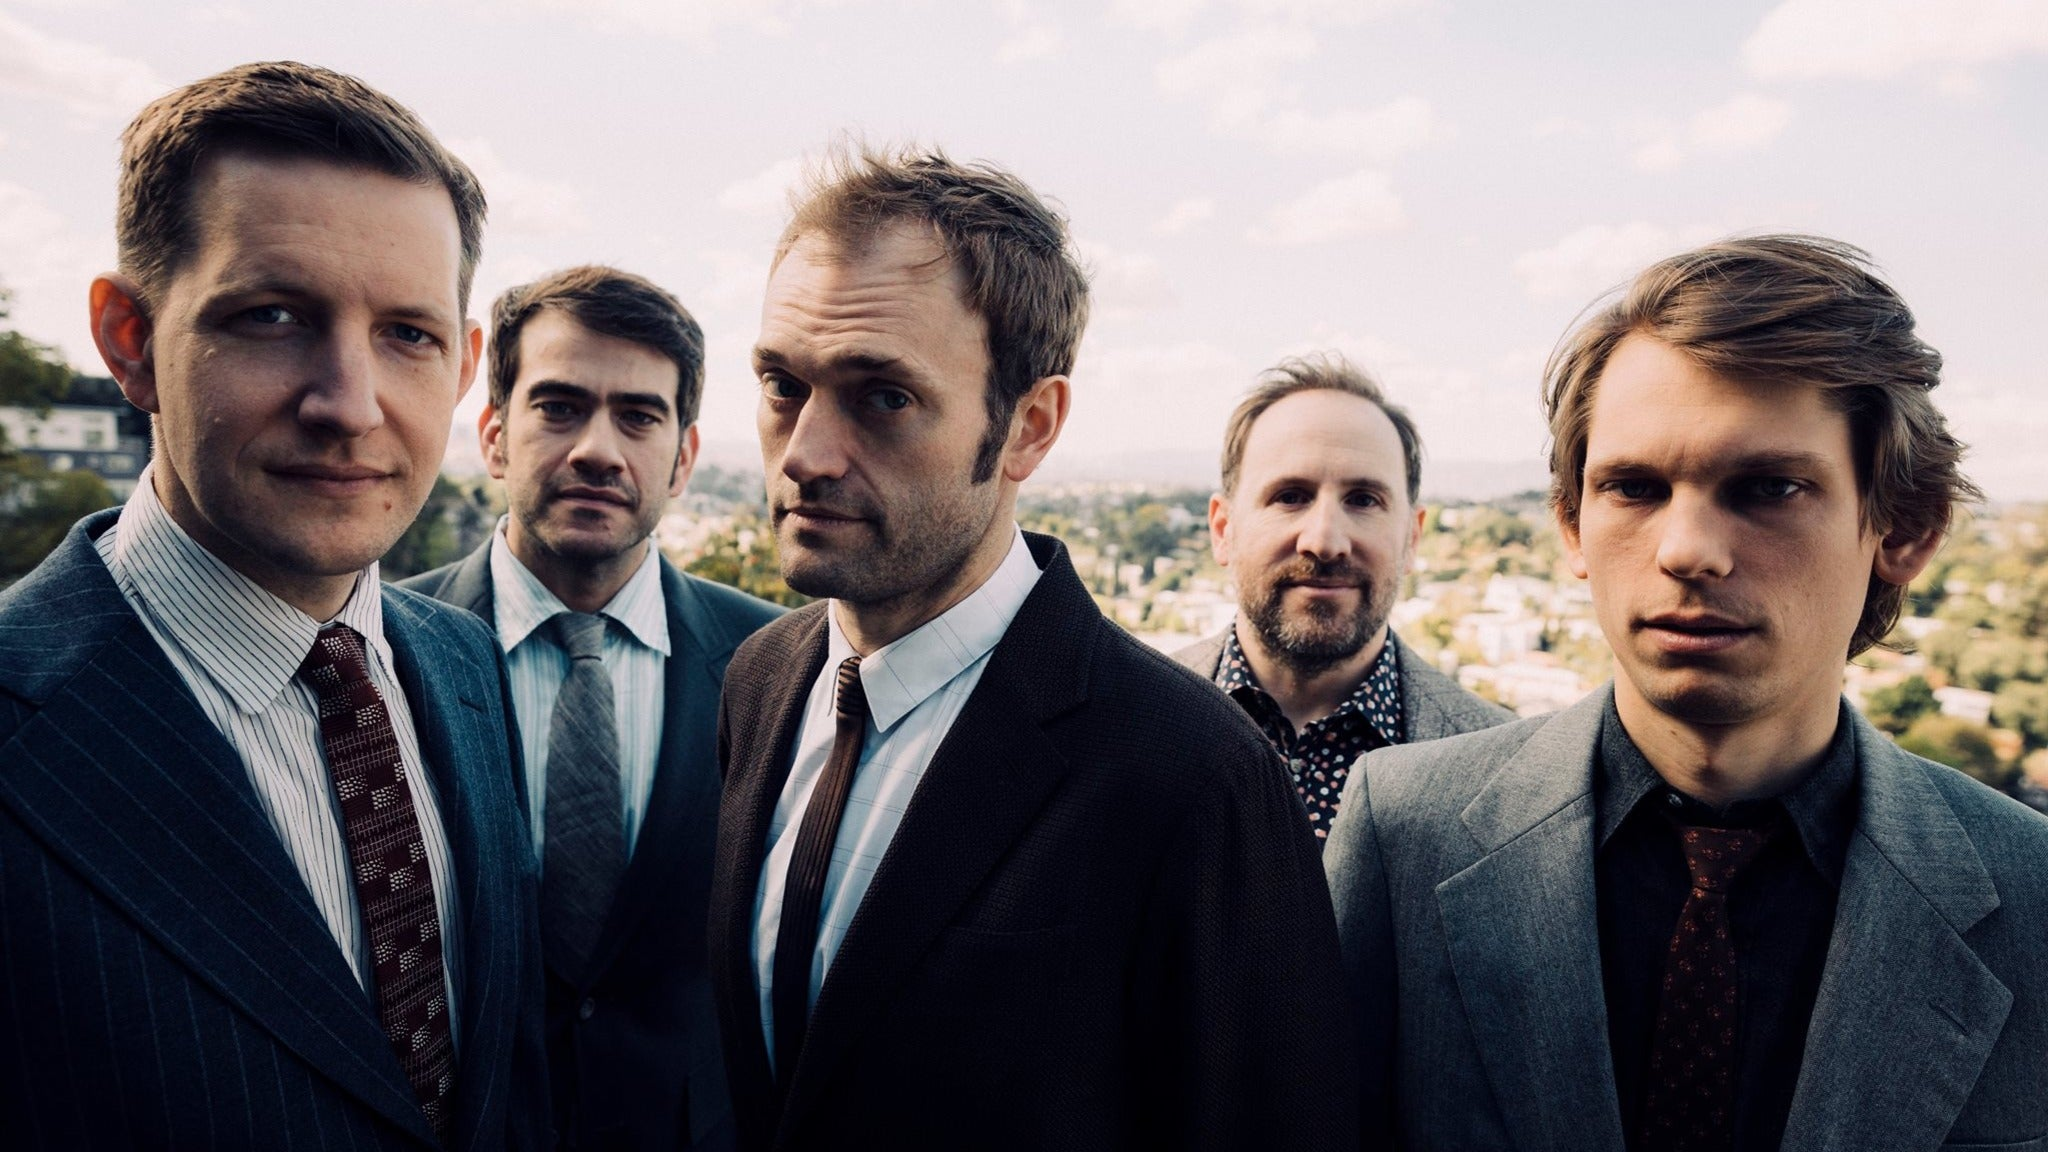 Punch Brothers at Ace Hotel Los Angeles - Los Angeles, CA 90015